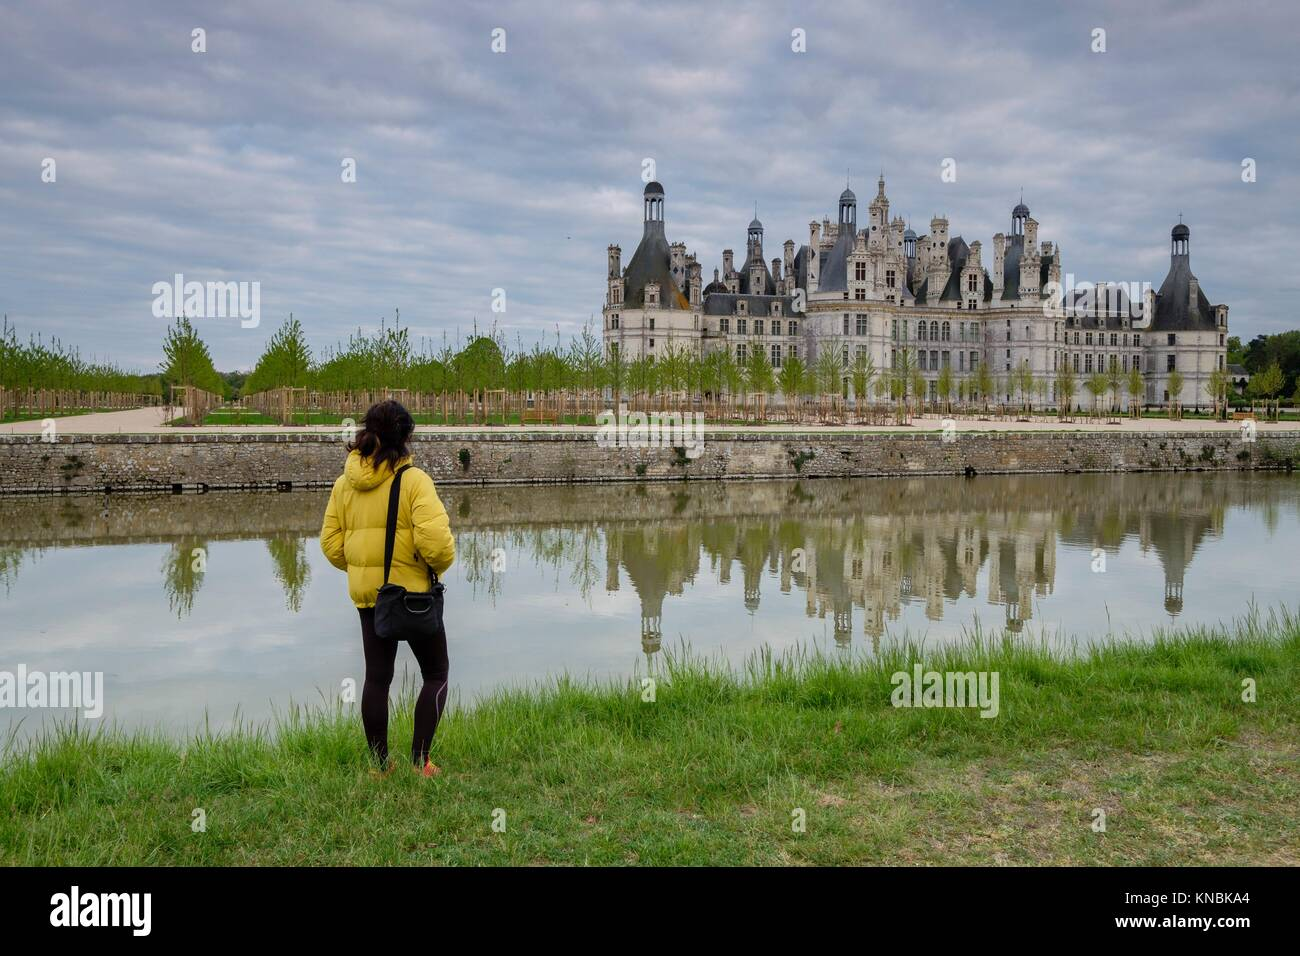 Chambord castle,16th Century, Loire Valley, France,Western Europe. - Stock Image